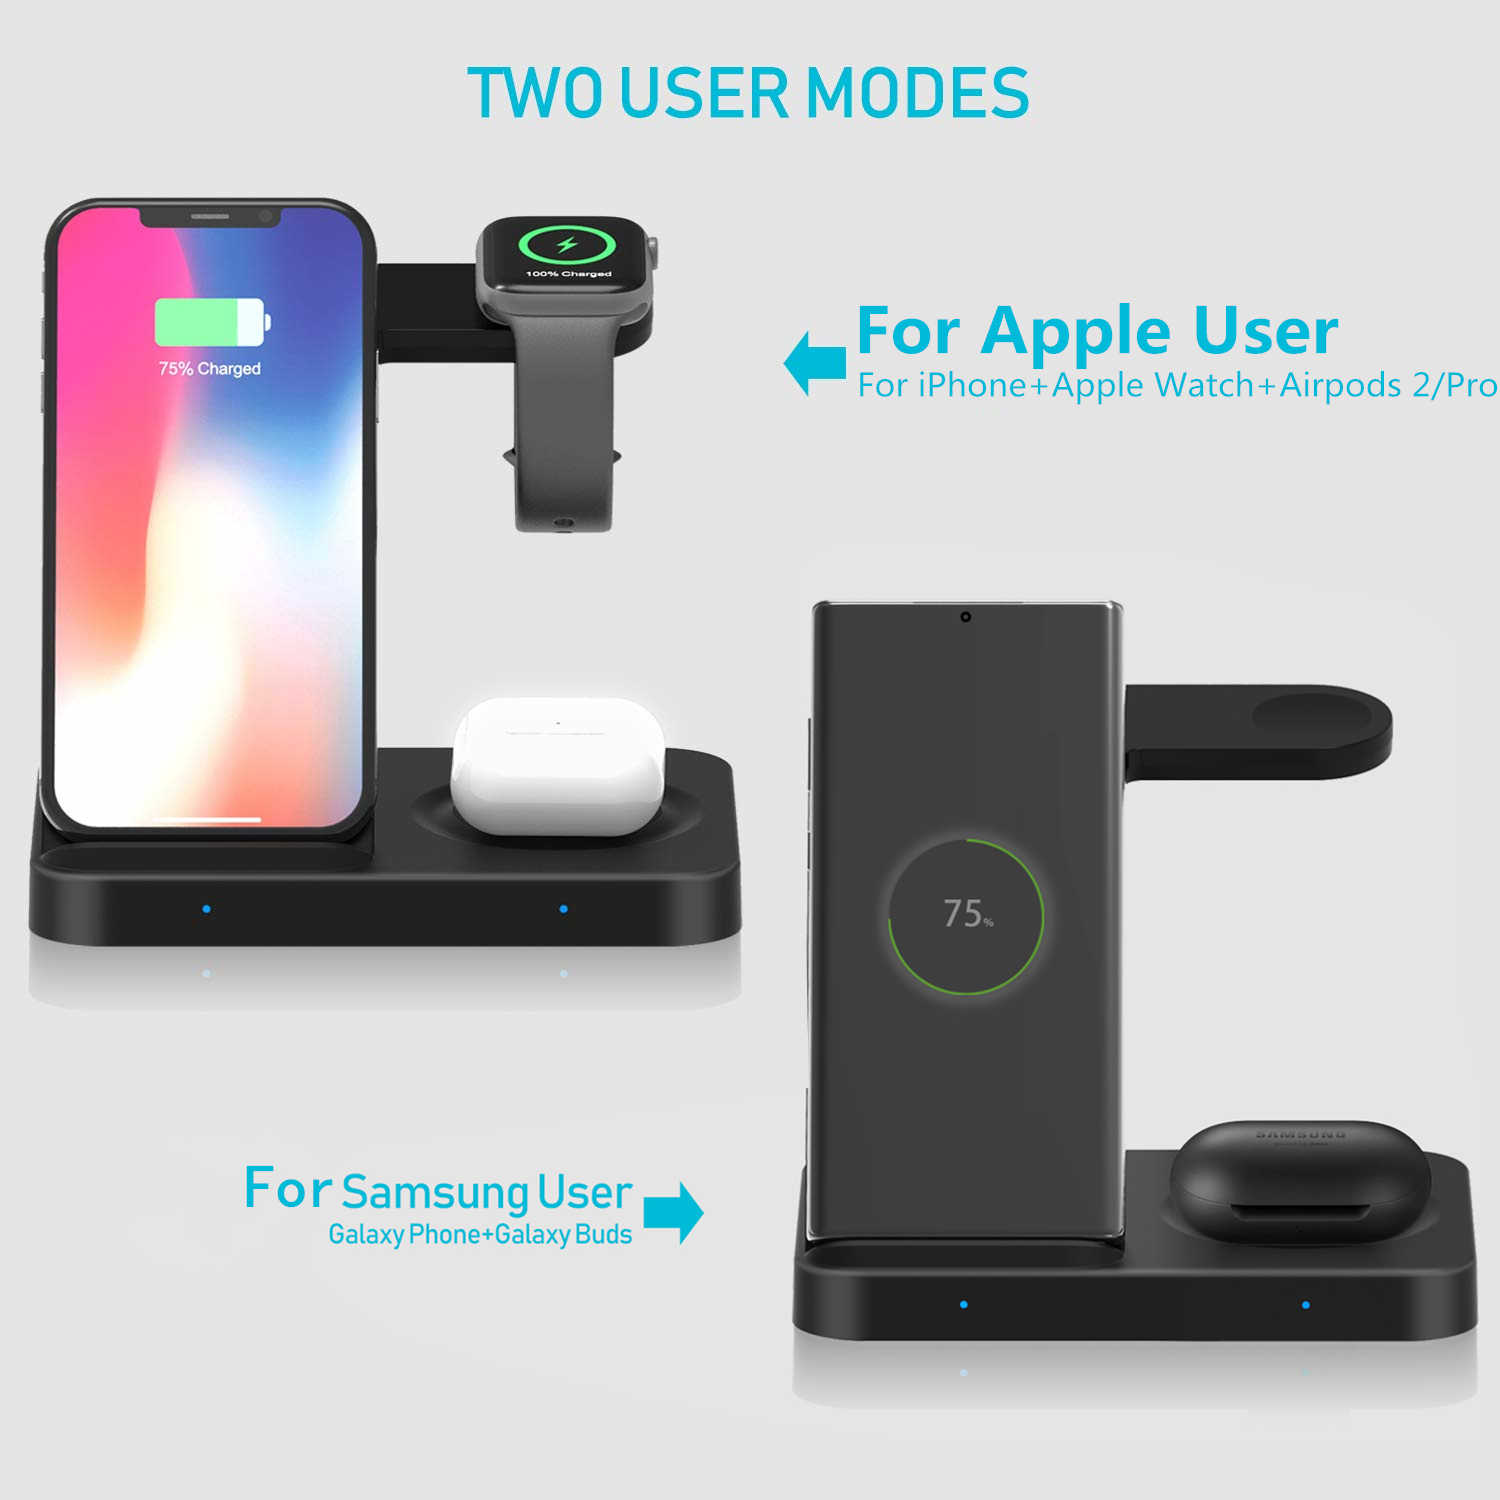 FDGAO 15W צ 'י אלחוטי מטען 3 ב 1 טעינת Stand עבור Airpods פרו iWatch תחנת עבור אפל שעון 5 4 3 2 1 iPhone 11 XS XR X 8